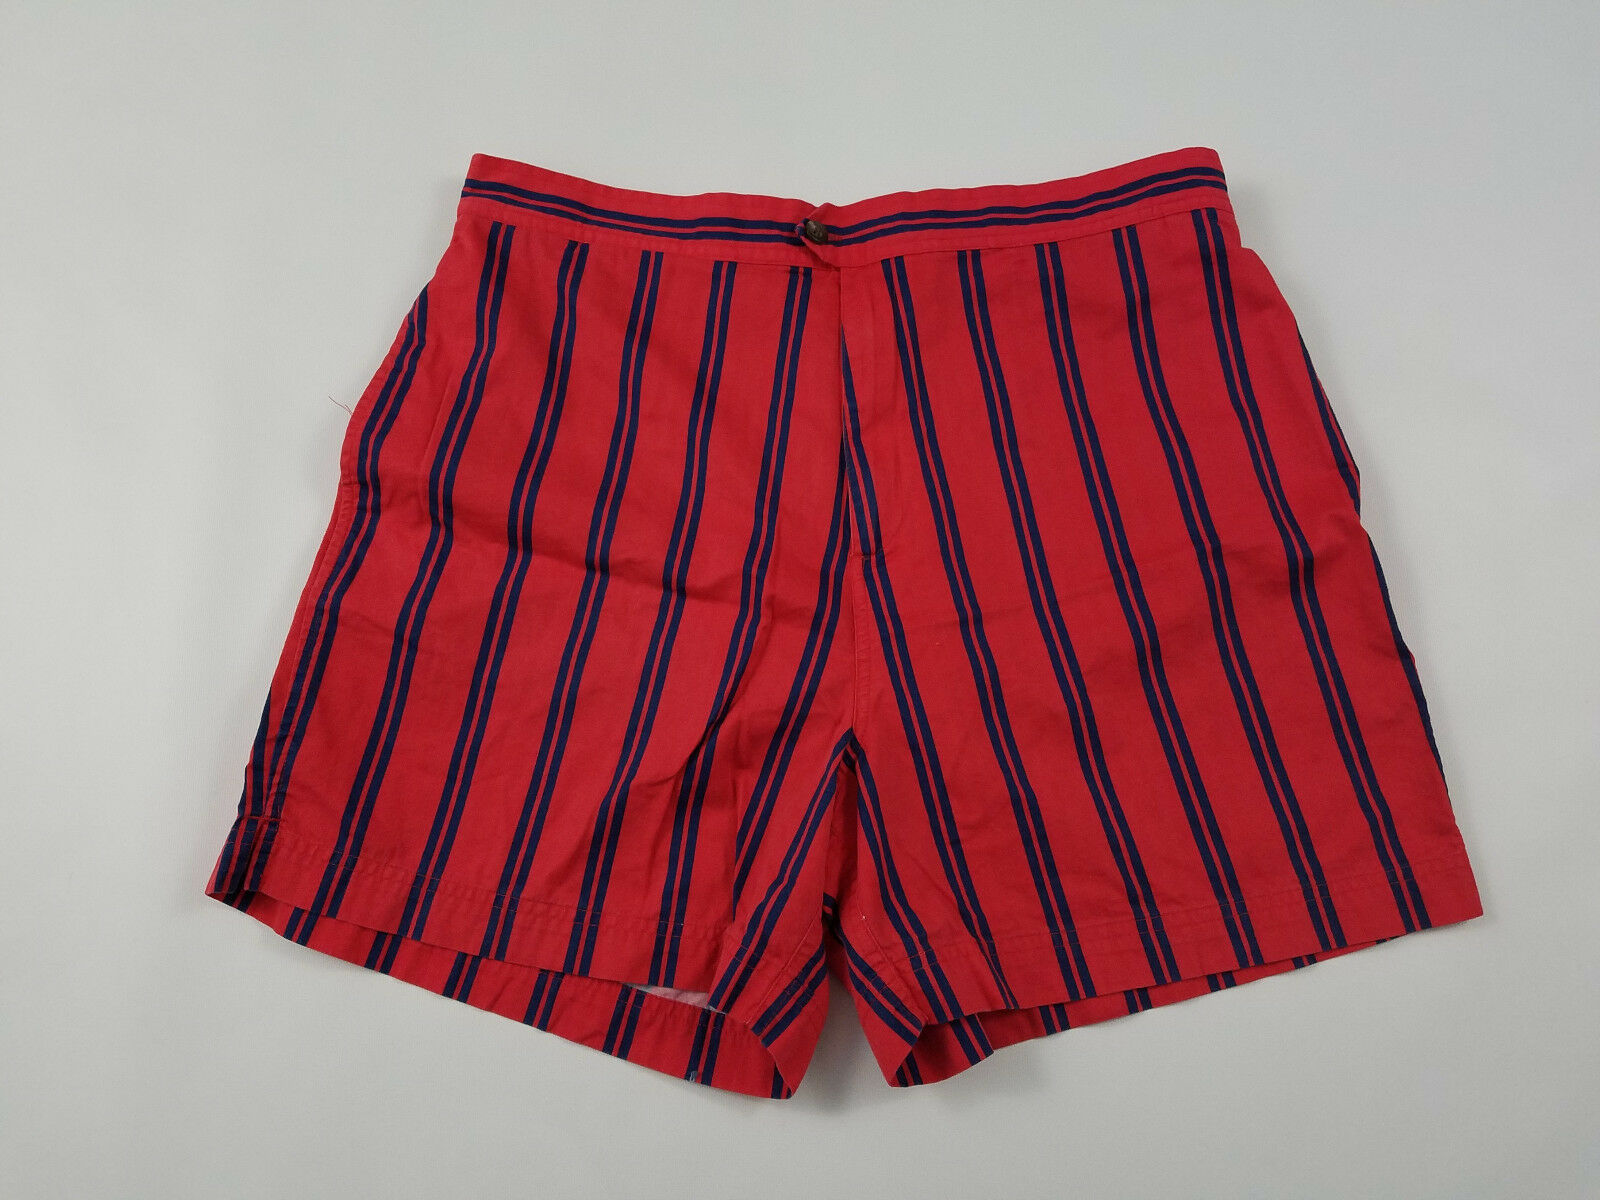 Polo Ralph Lauren Stripe Shorts Men's XL Swim Suit Trunks Vintage 90s Mesh Lined